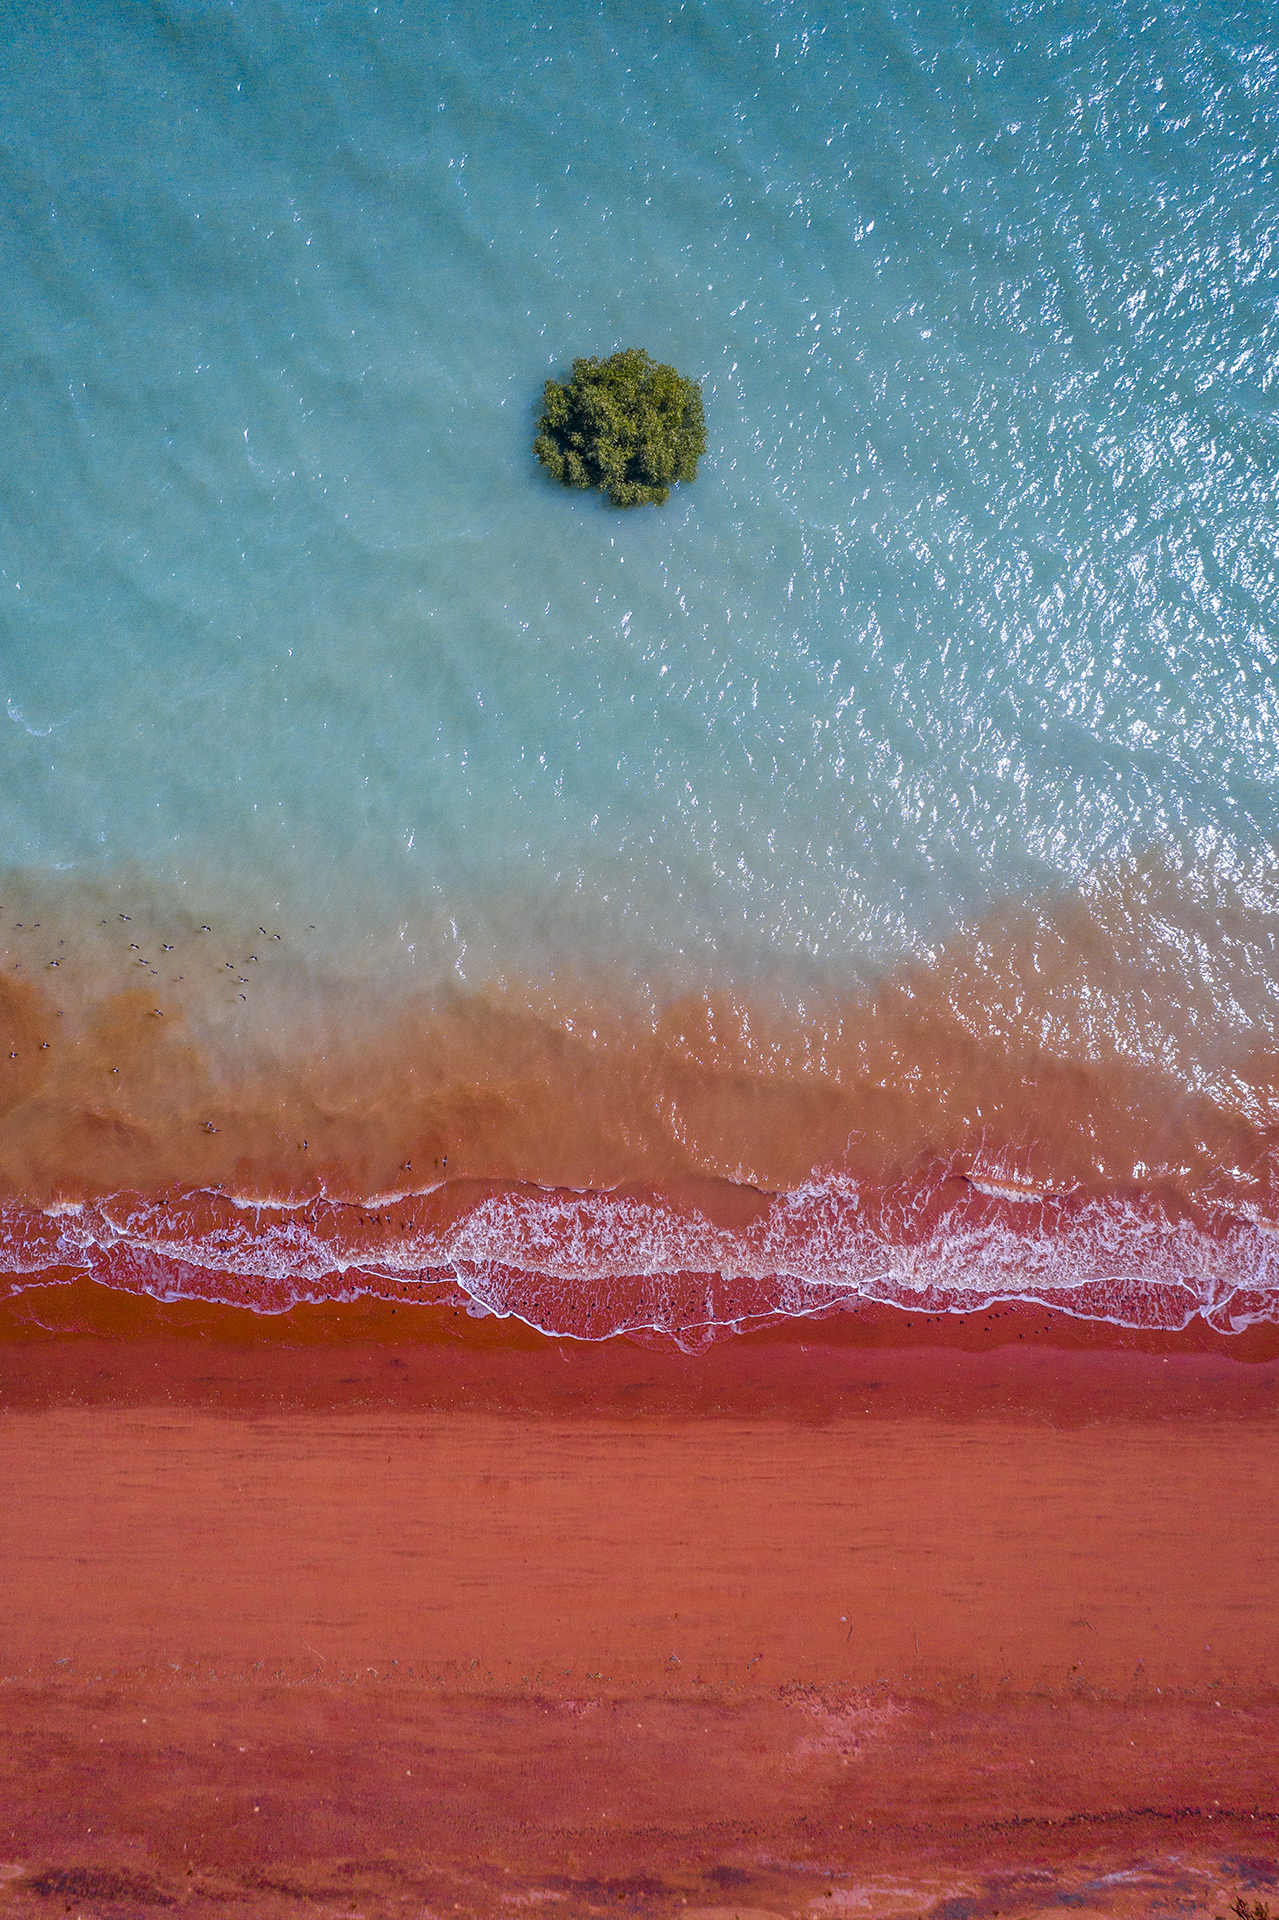 © Scott Portelli, Australia, Shortlist, Open, Landscape, 2021 Sony World Photography Awards